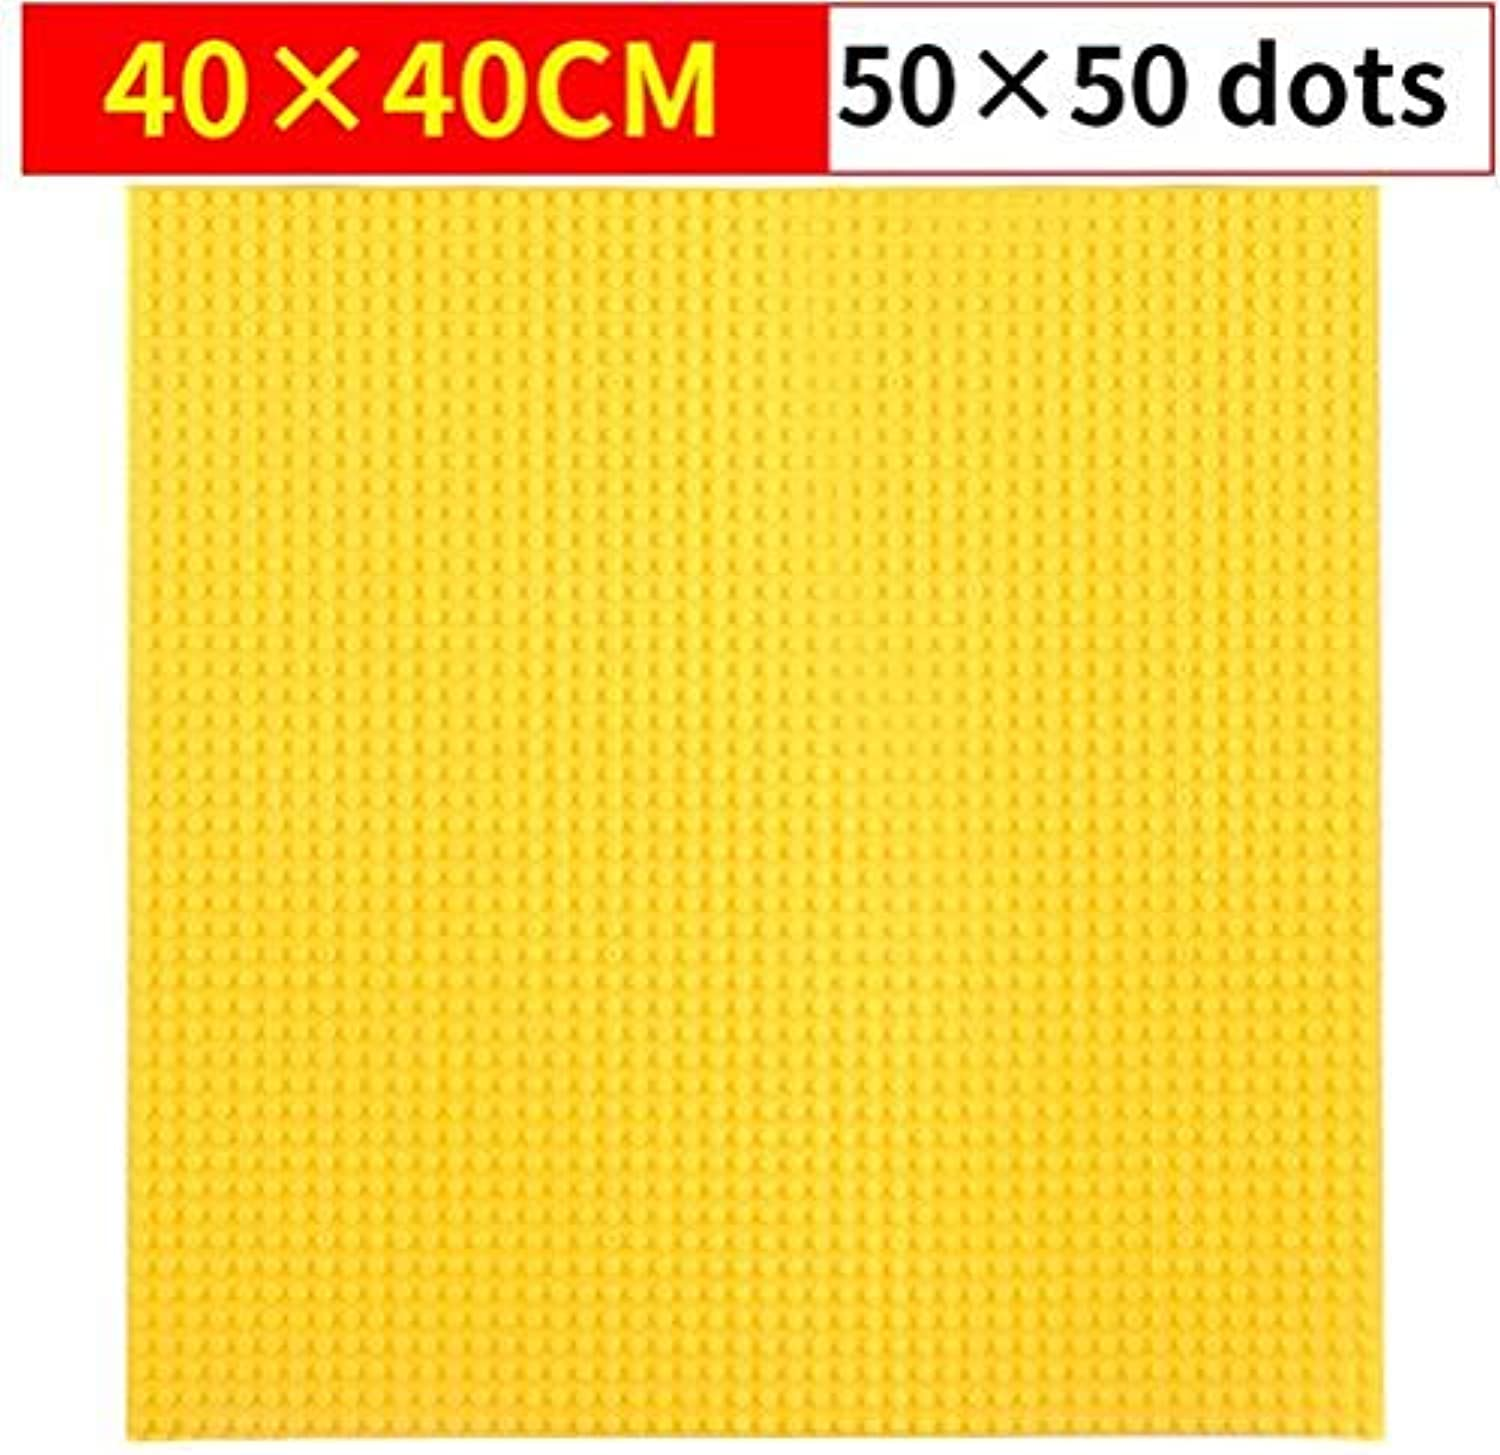 Generic 5050 Dots Small Building Blocks Big Base Plate 4040CM Small Bricks Baseplate Construction Toys for Kids Compatible L Baseplate Yellow